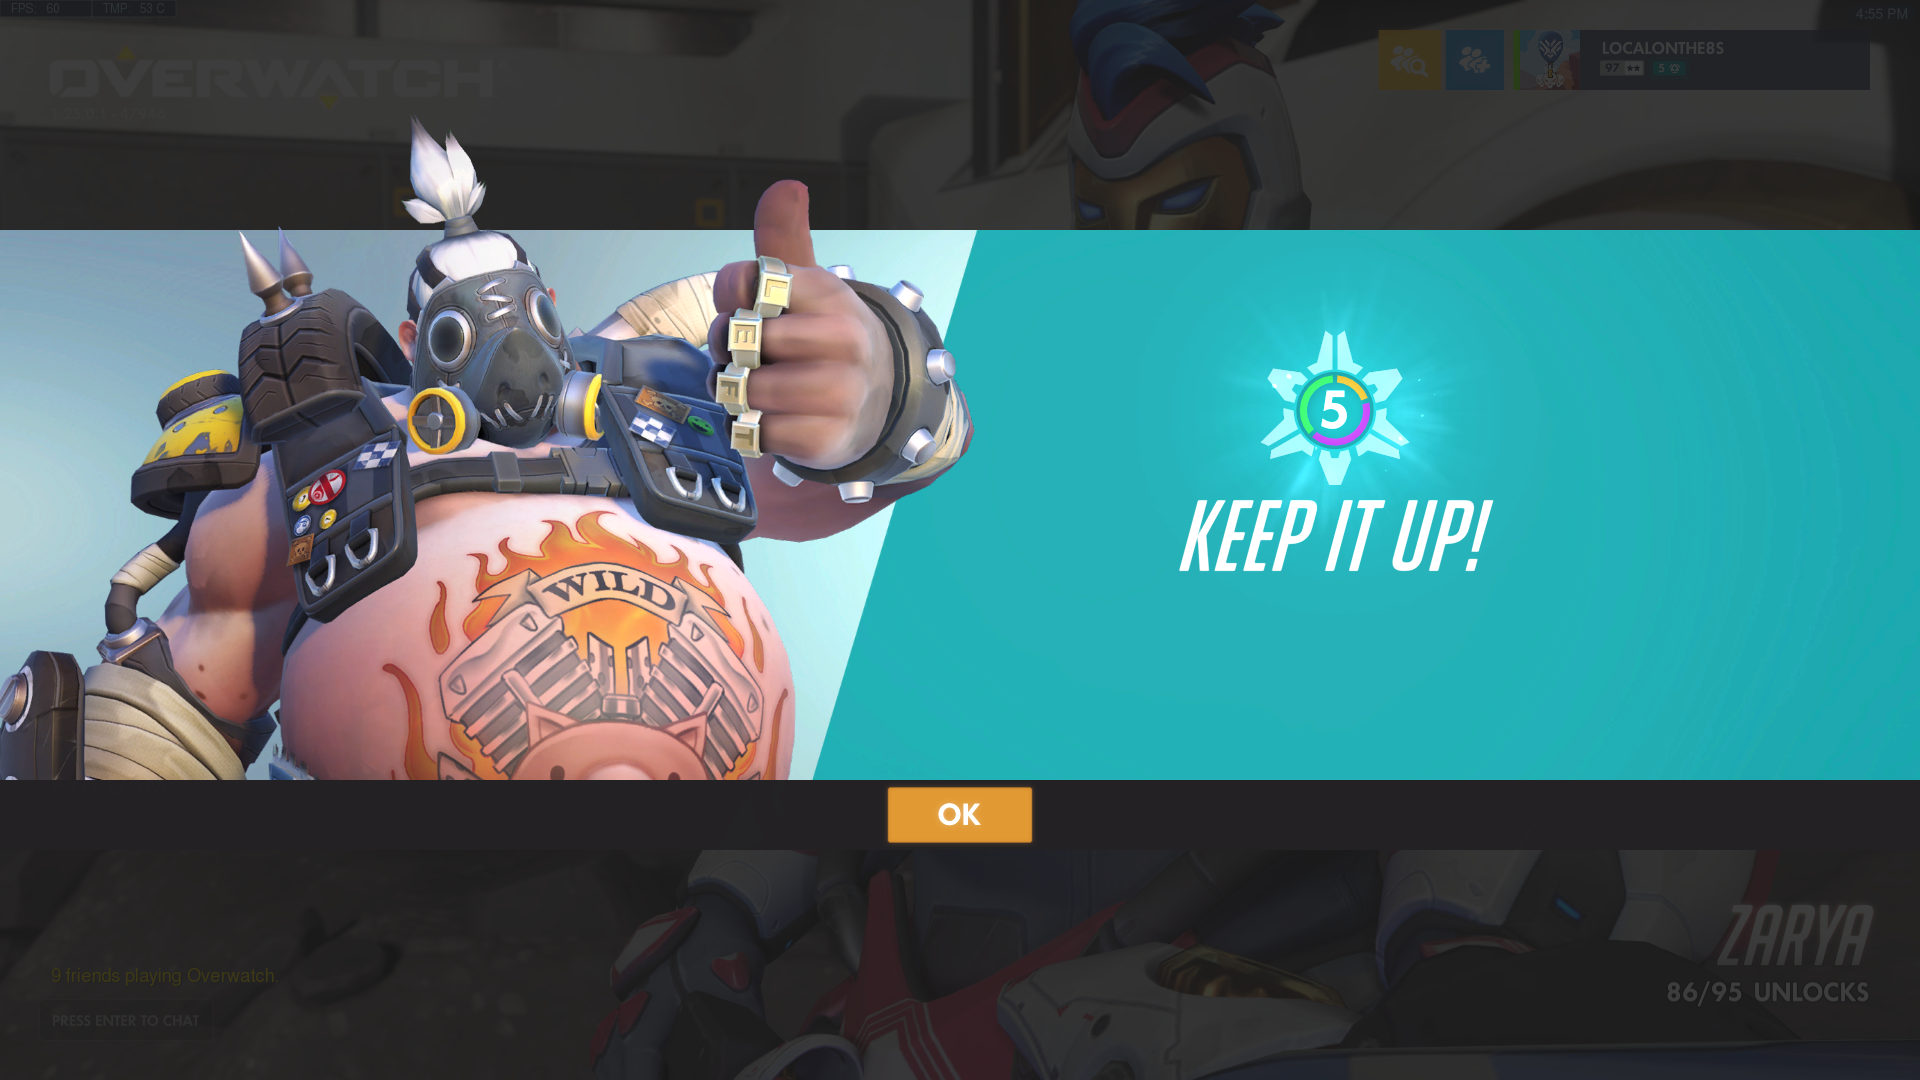 Roadhog thumbs up with Overwatch endorsement system